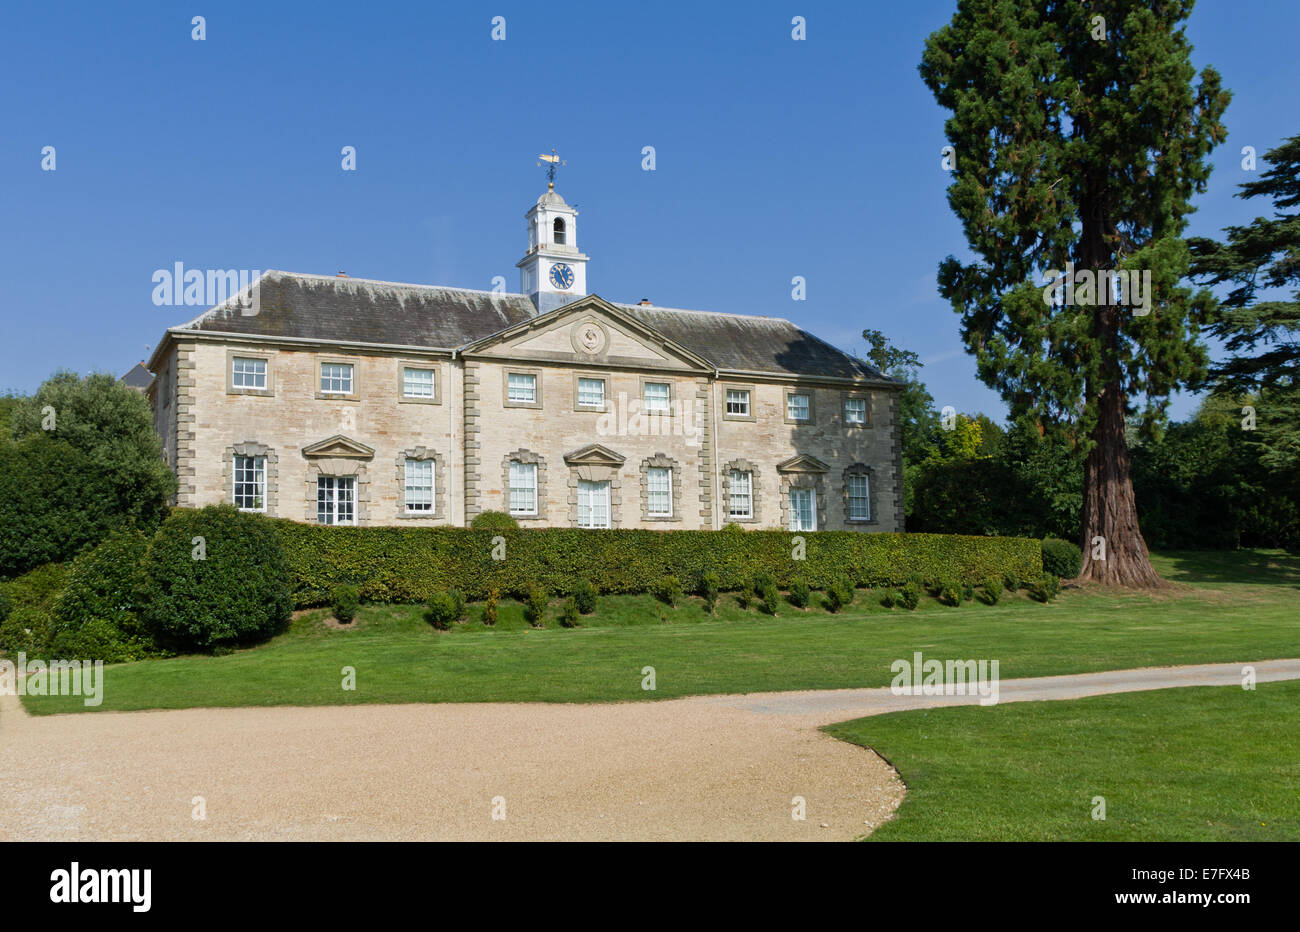 The Coach House, an historic building, situated in the grounds of the Compton Verney estate, Warwickshire. - Stock Image